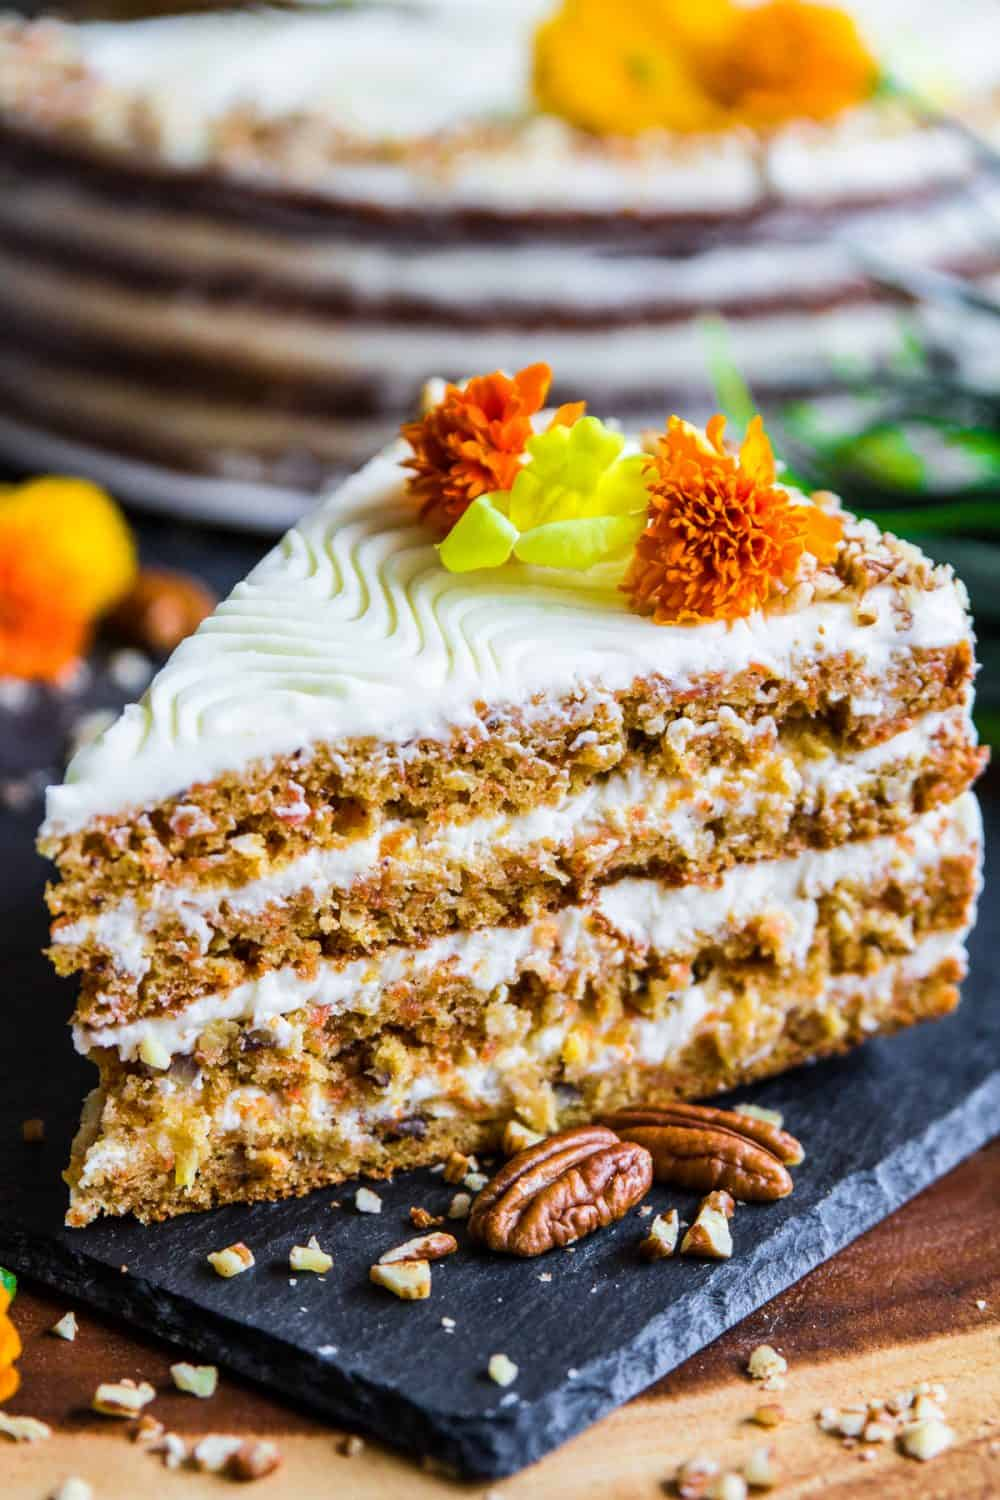 Slice of 4 layer carrot cake with flowers on top and pecans next to it, and a whole carrot cake in the background.